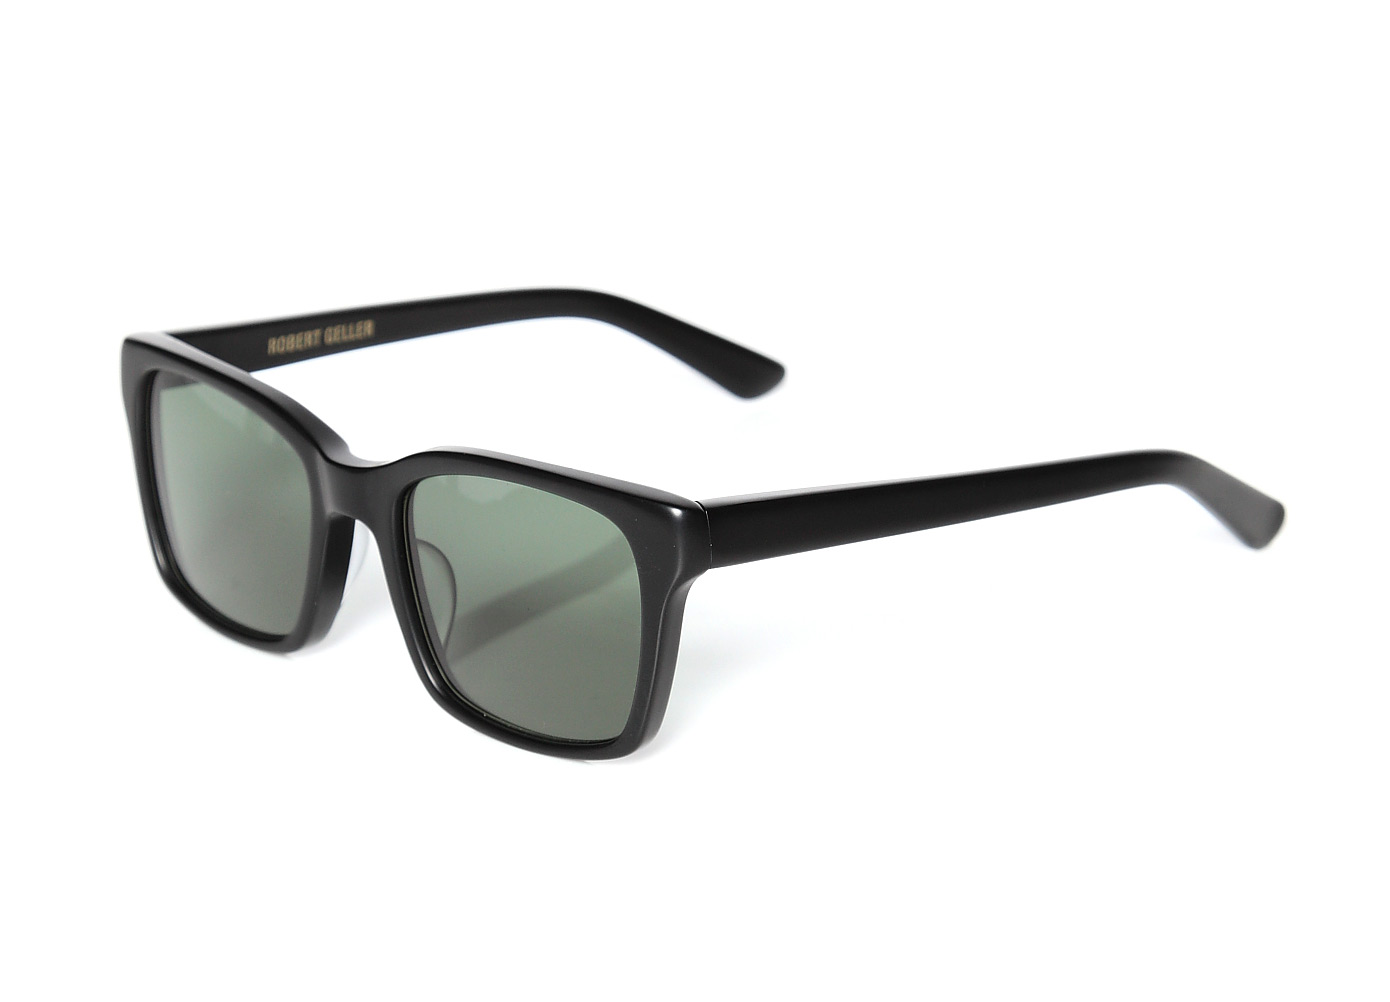 robert-geller-sunglasses-02